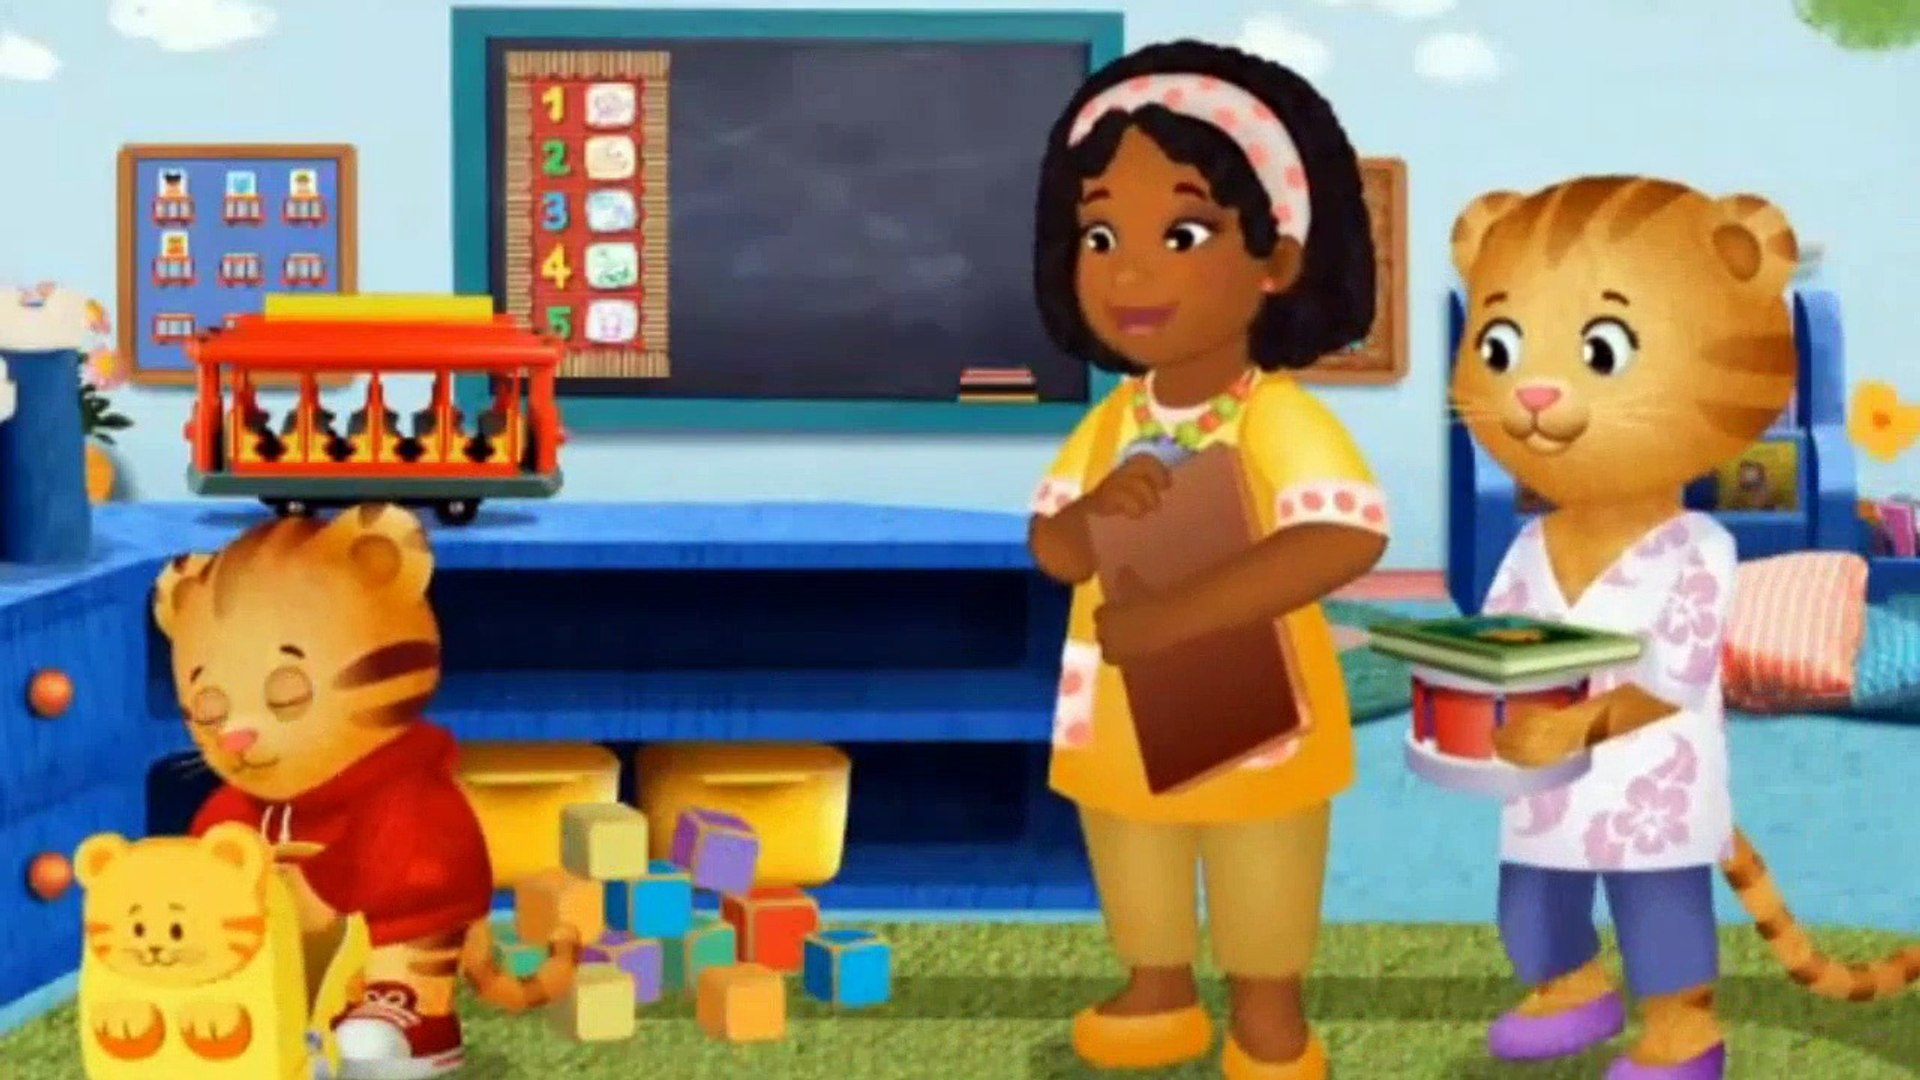 Daniel Tigers Neighborhood S01e02 - Daniel Visits School Daniel Visits The Doctor